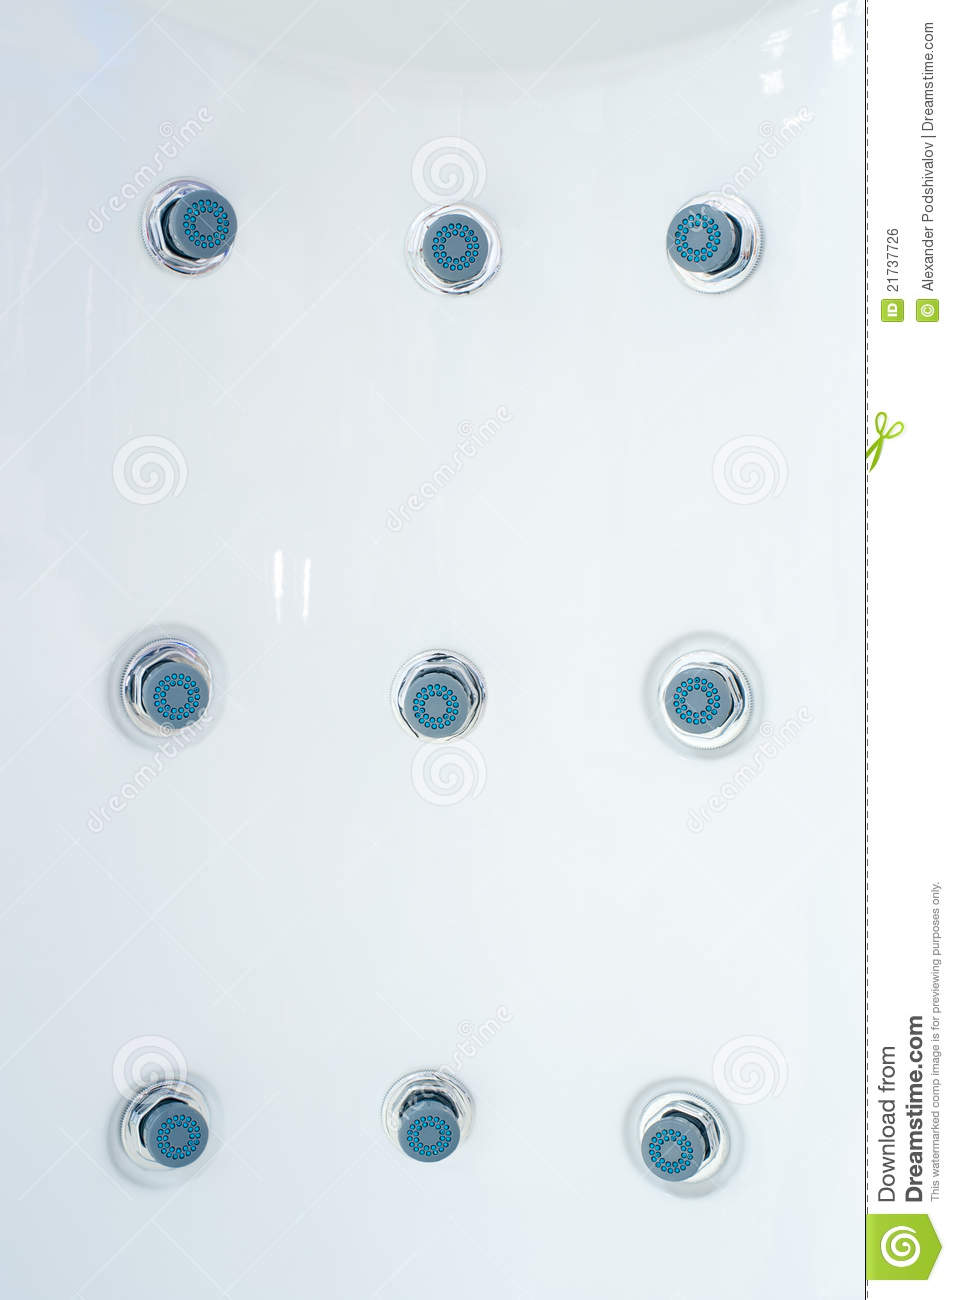 Whirlpool Jets On Shower Panel Stock Photo - Image of empty ...